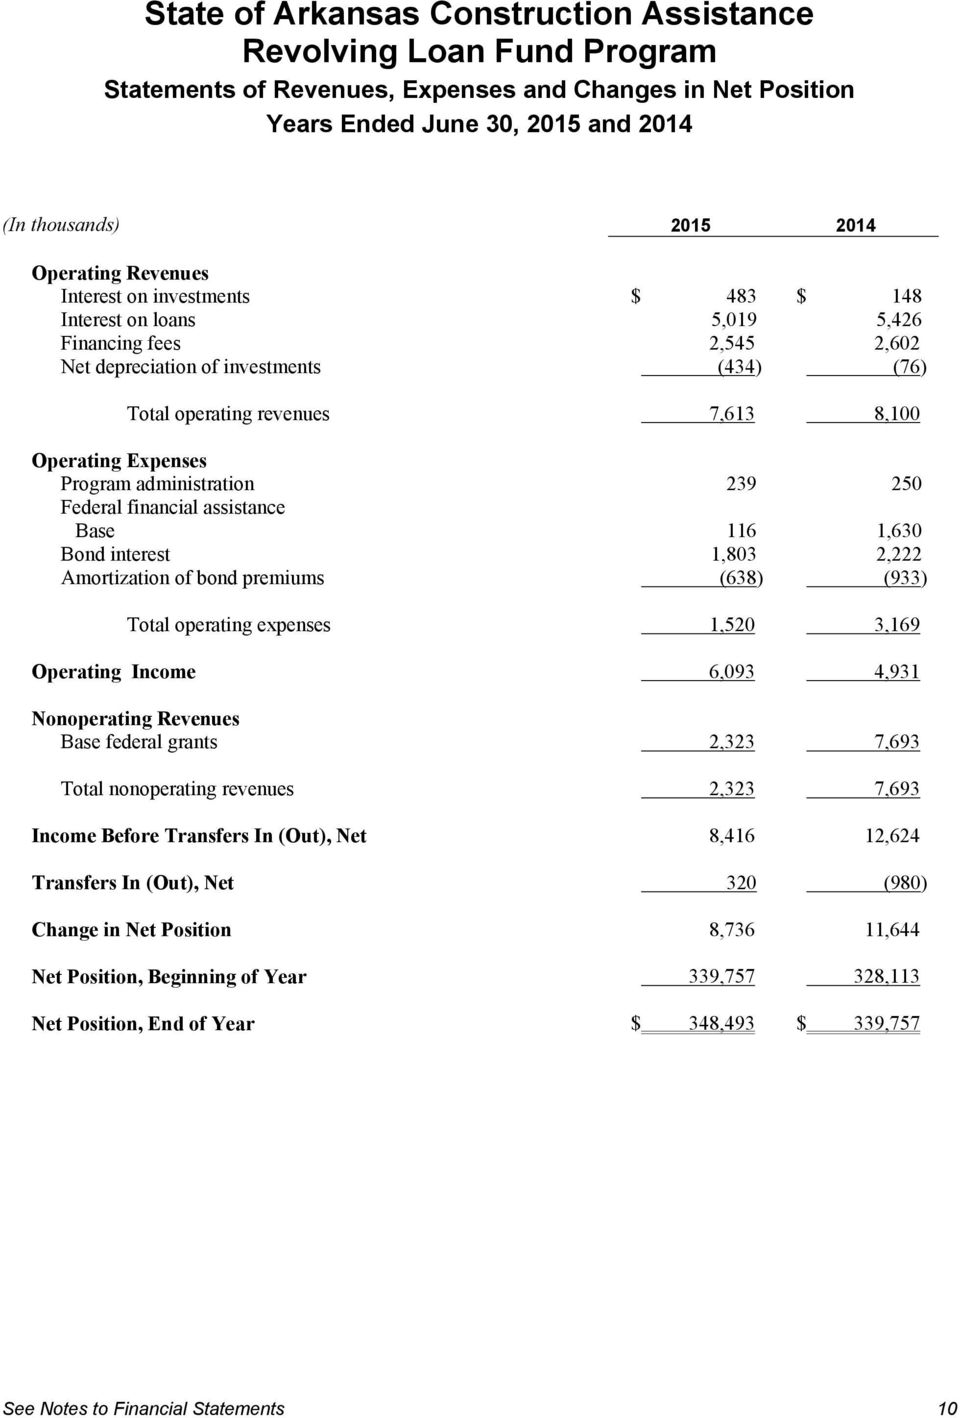 1,803 2,222 Amortization of bond premiums (638) (933) Total operating expenses 1,520 3,169 Operating Income 6,093 4,931 Nonoperating Revenues Base federal grants 2,323 7,693 Total nonoperating